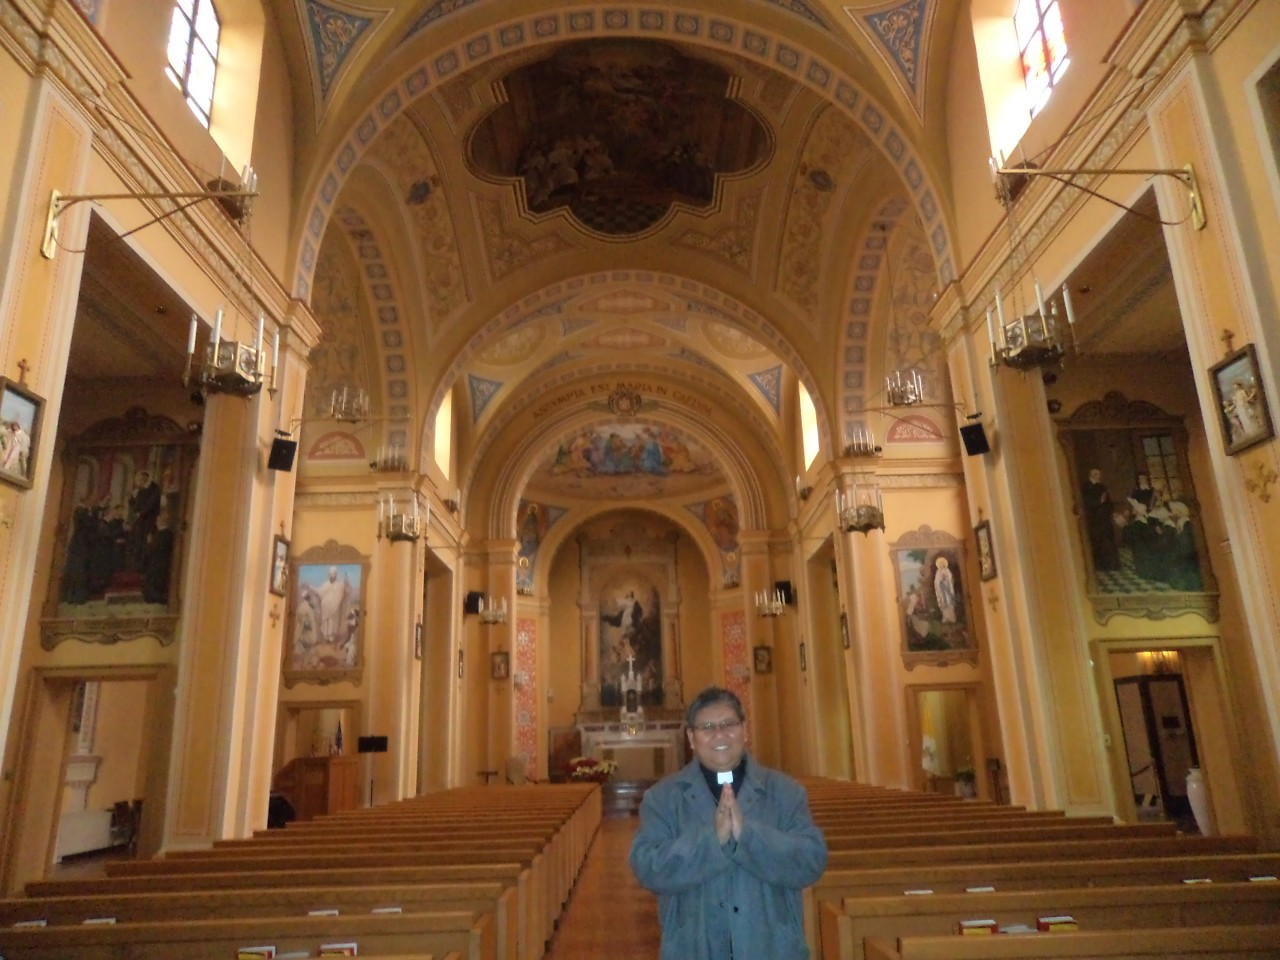 FR. ABE IN U.S. NATIONAL SHRINE OF THE MIRACULOUS MEDAL 2